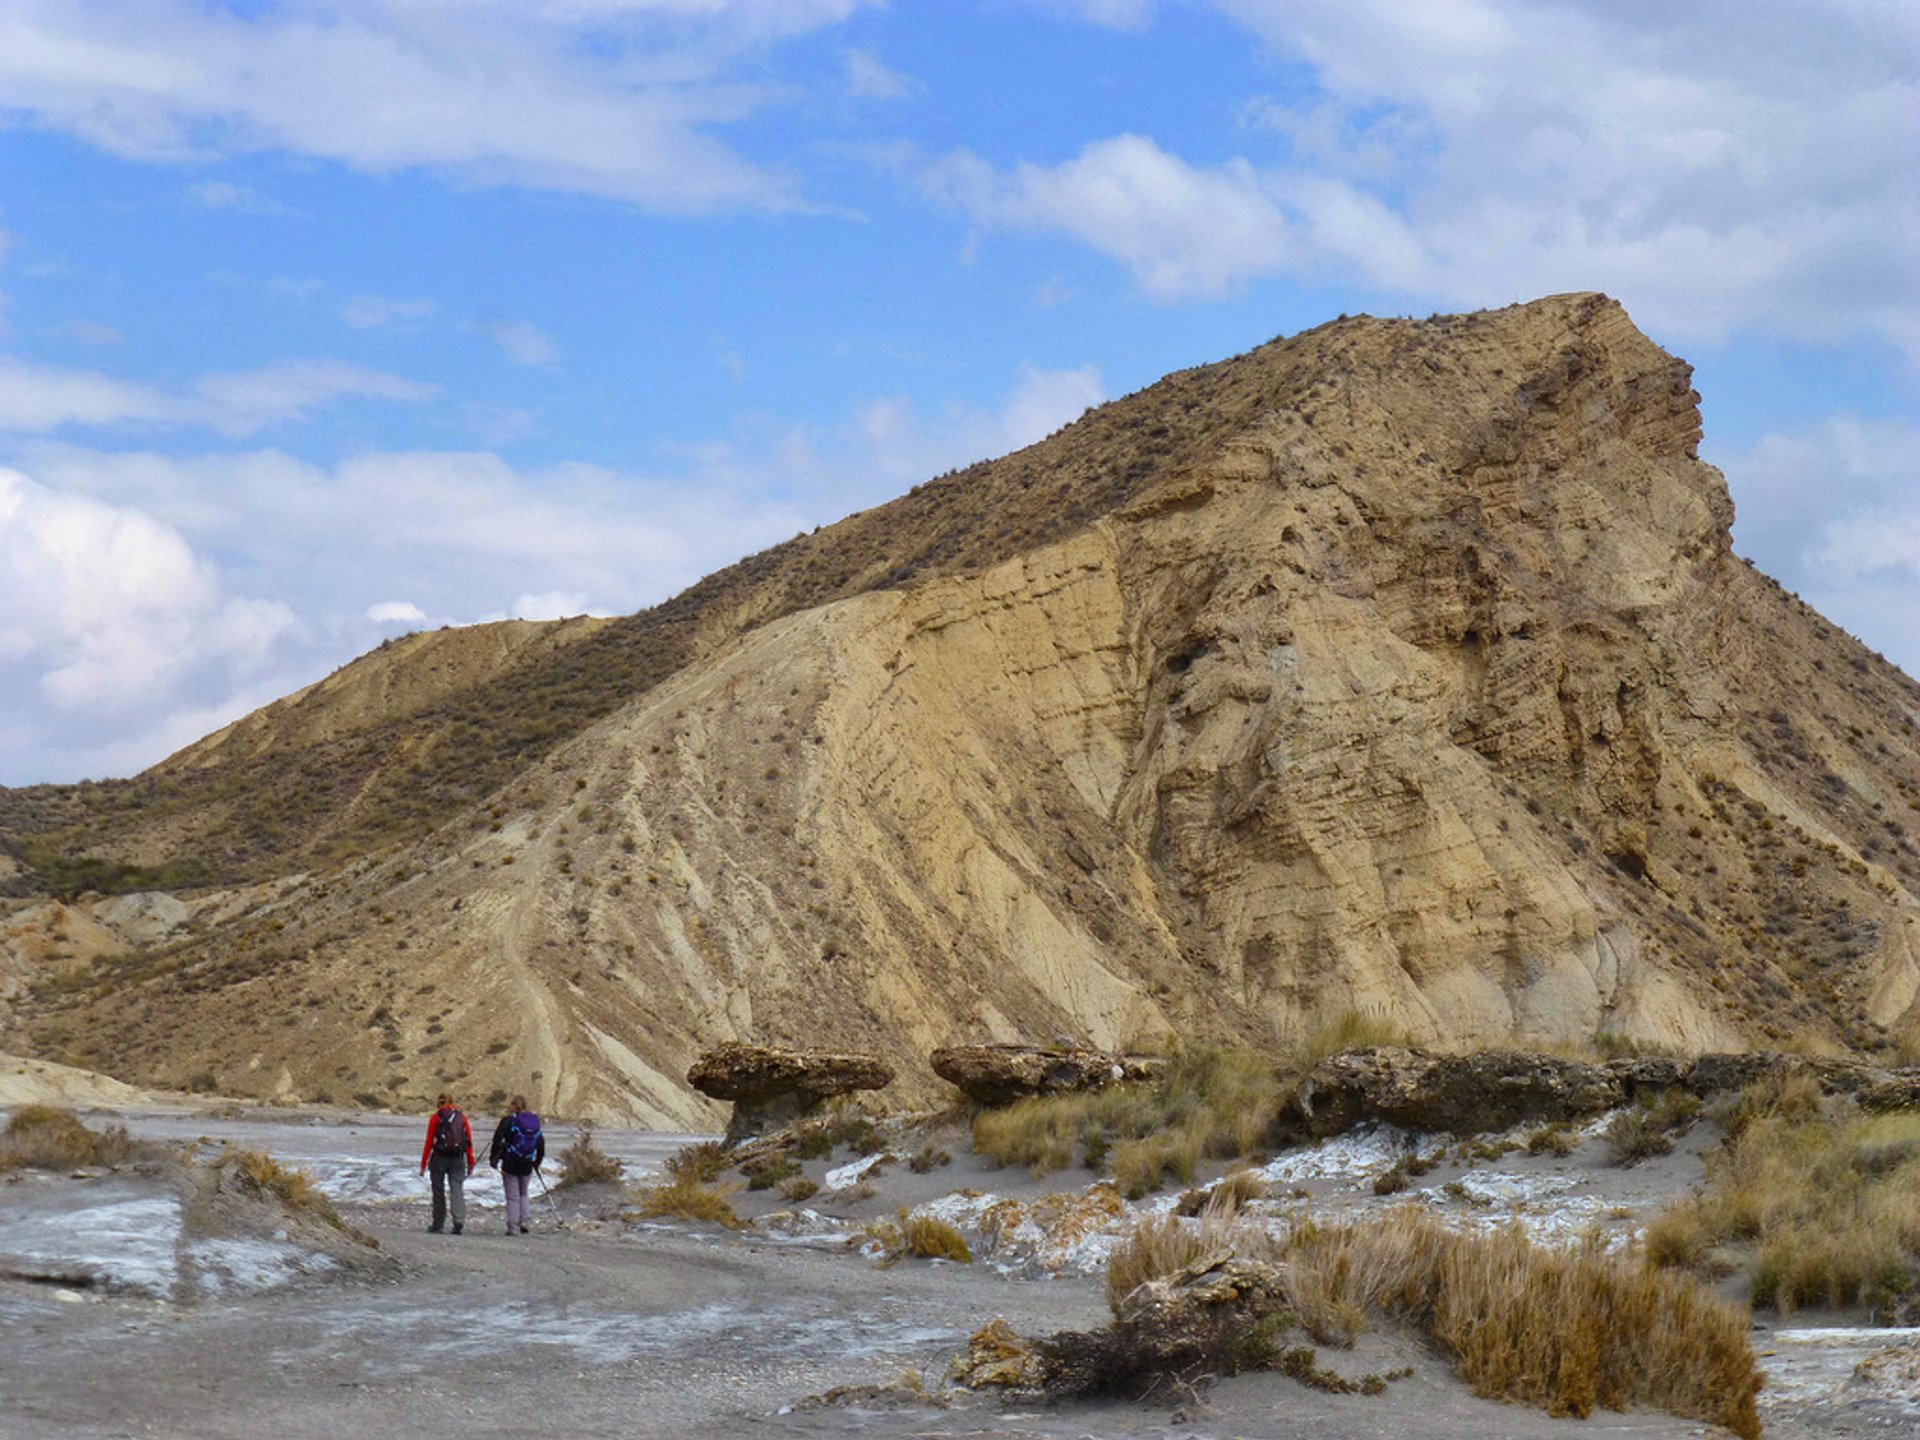 Best time to see Tabernas, Europe's Only Desert 2019